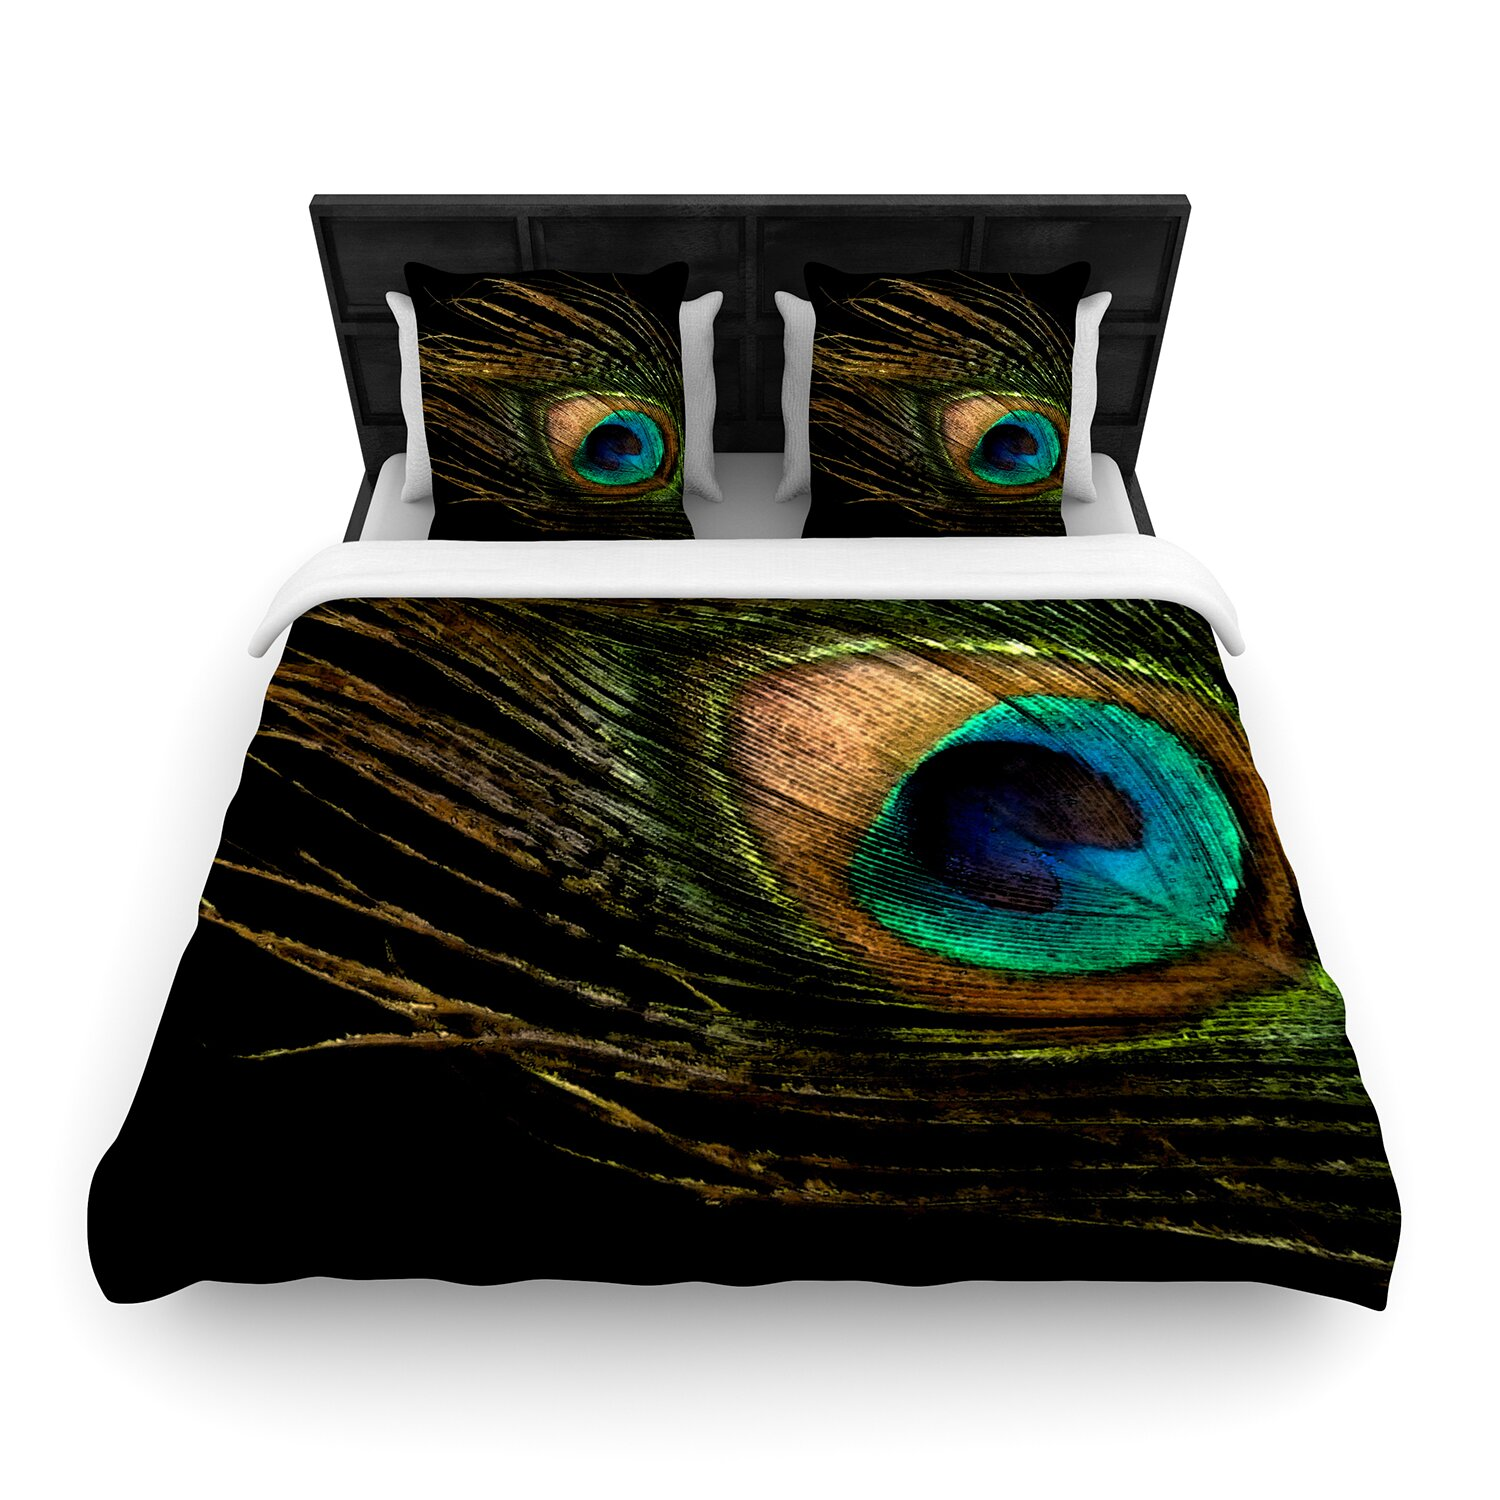 Peacock bathroom towels - Kess Inhouse Peacock By Alison Coxon Featherweight Duvet Cover